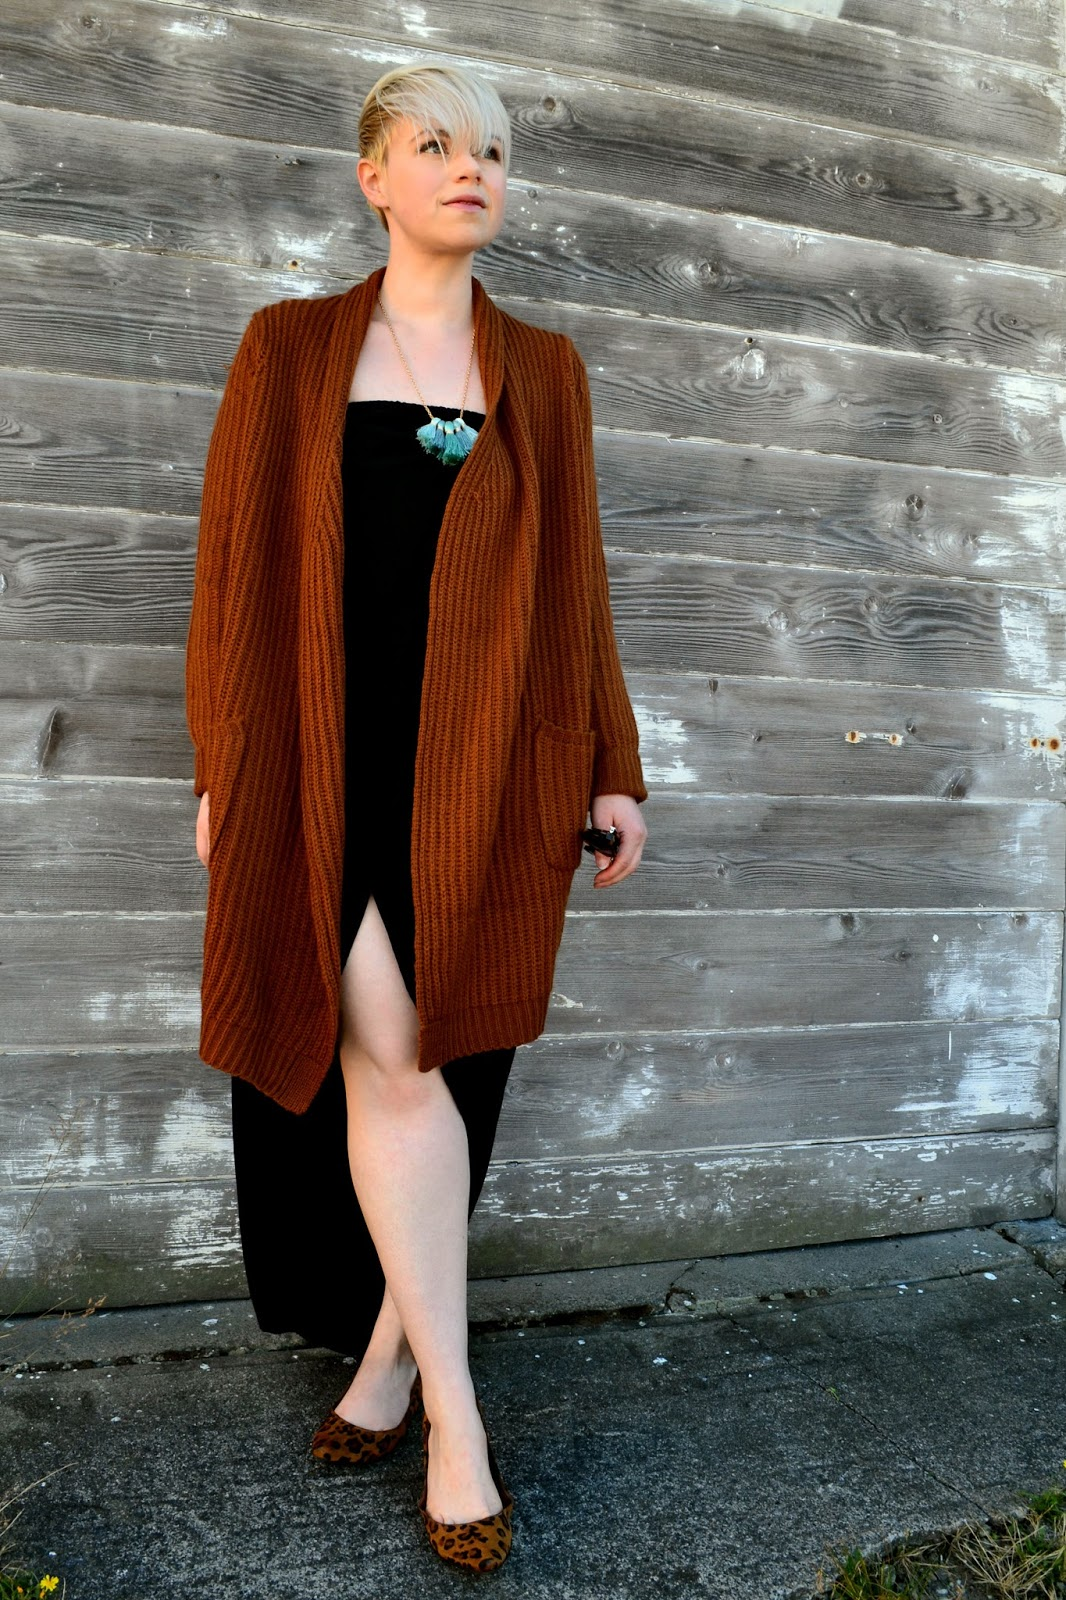 Black dress cardigan - Black Dress With Cardigan Look Of The Day Cozy Brown Cardigan And Black Dress